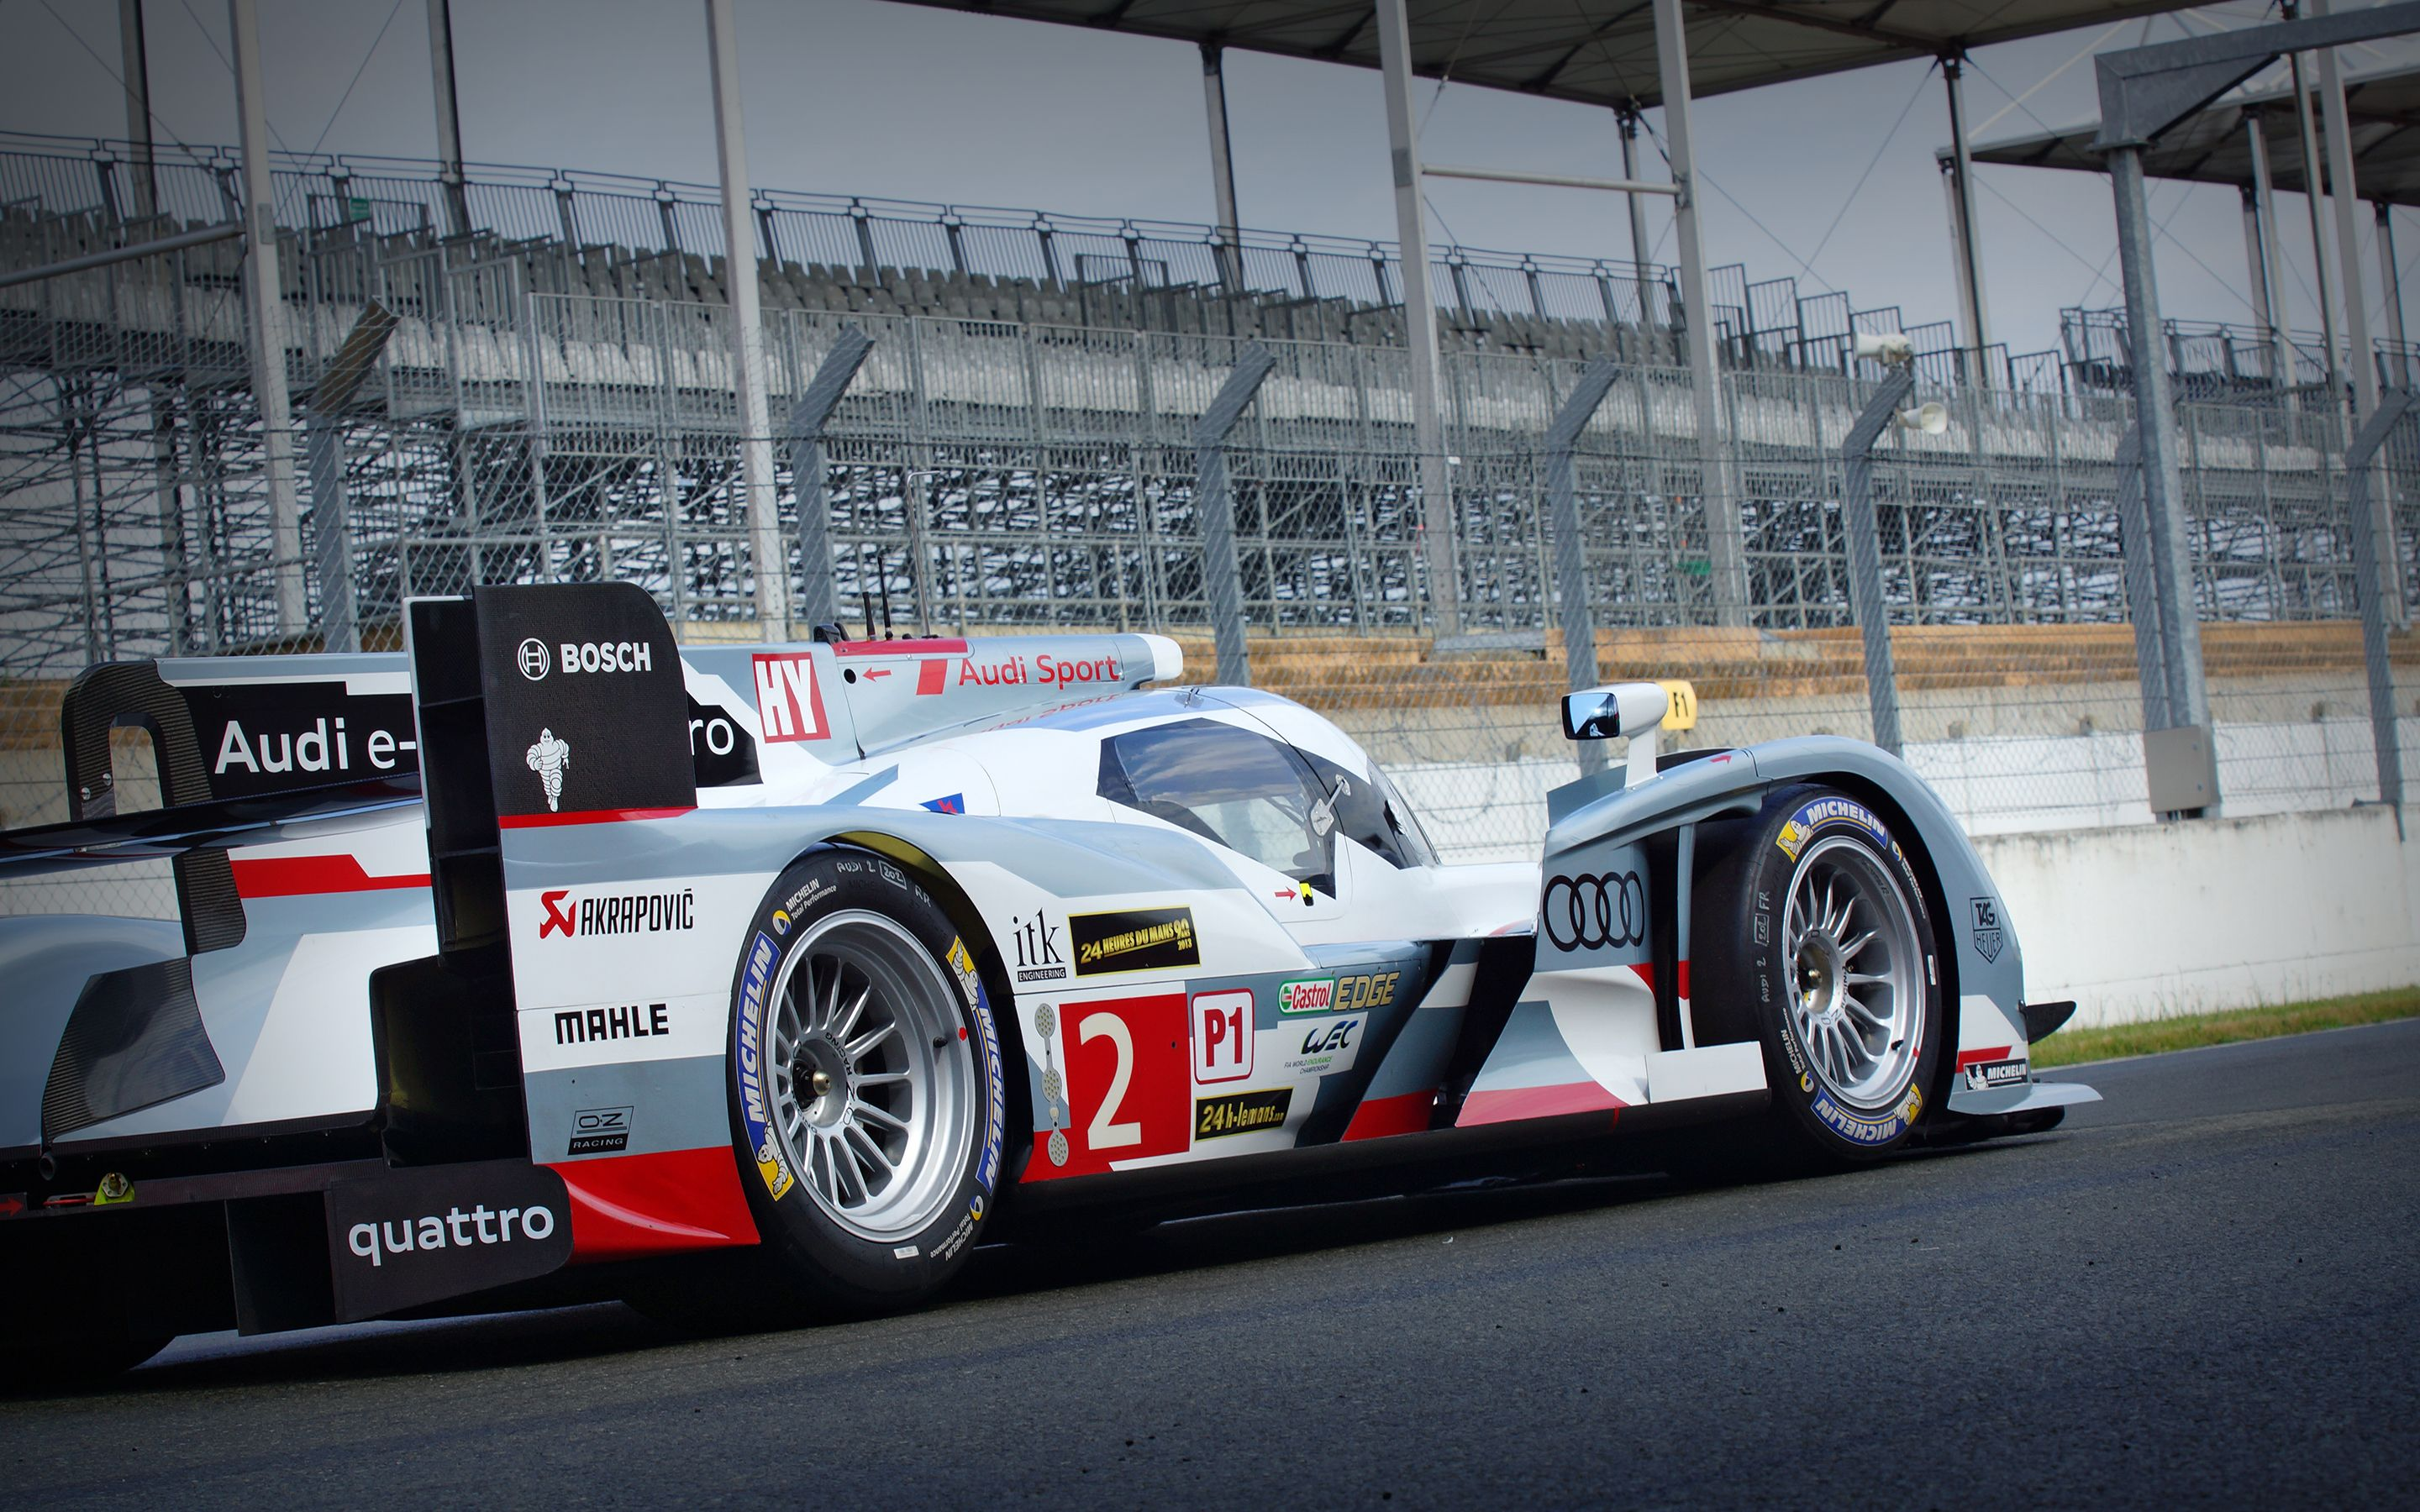 WotD Le Mans Winning Audi R18 e tron quattro is Wallpaper of the 2880x1800